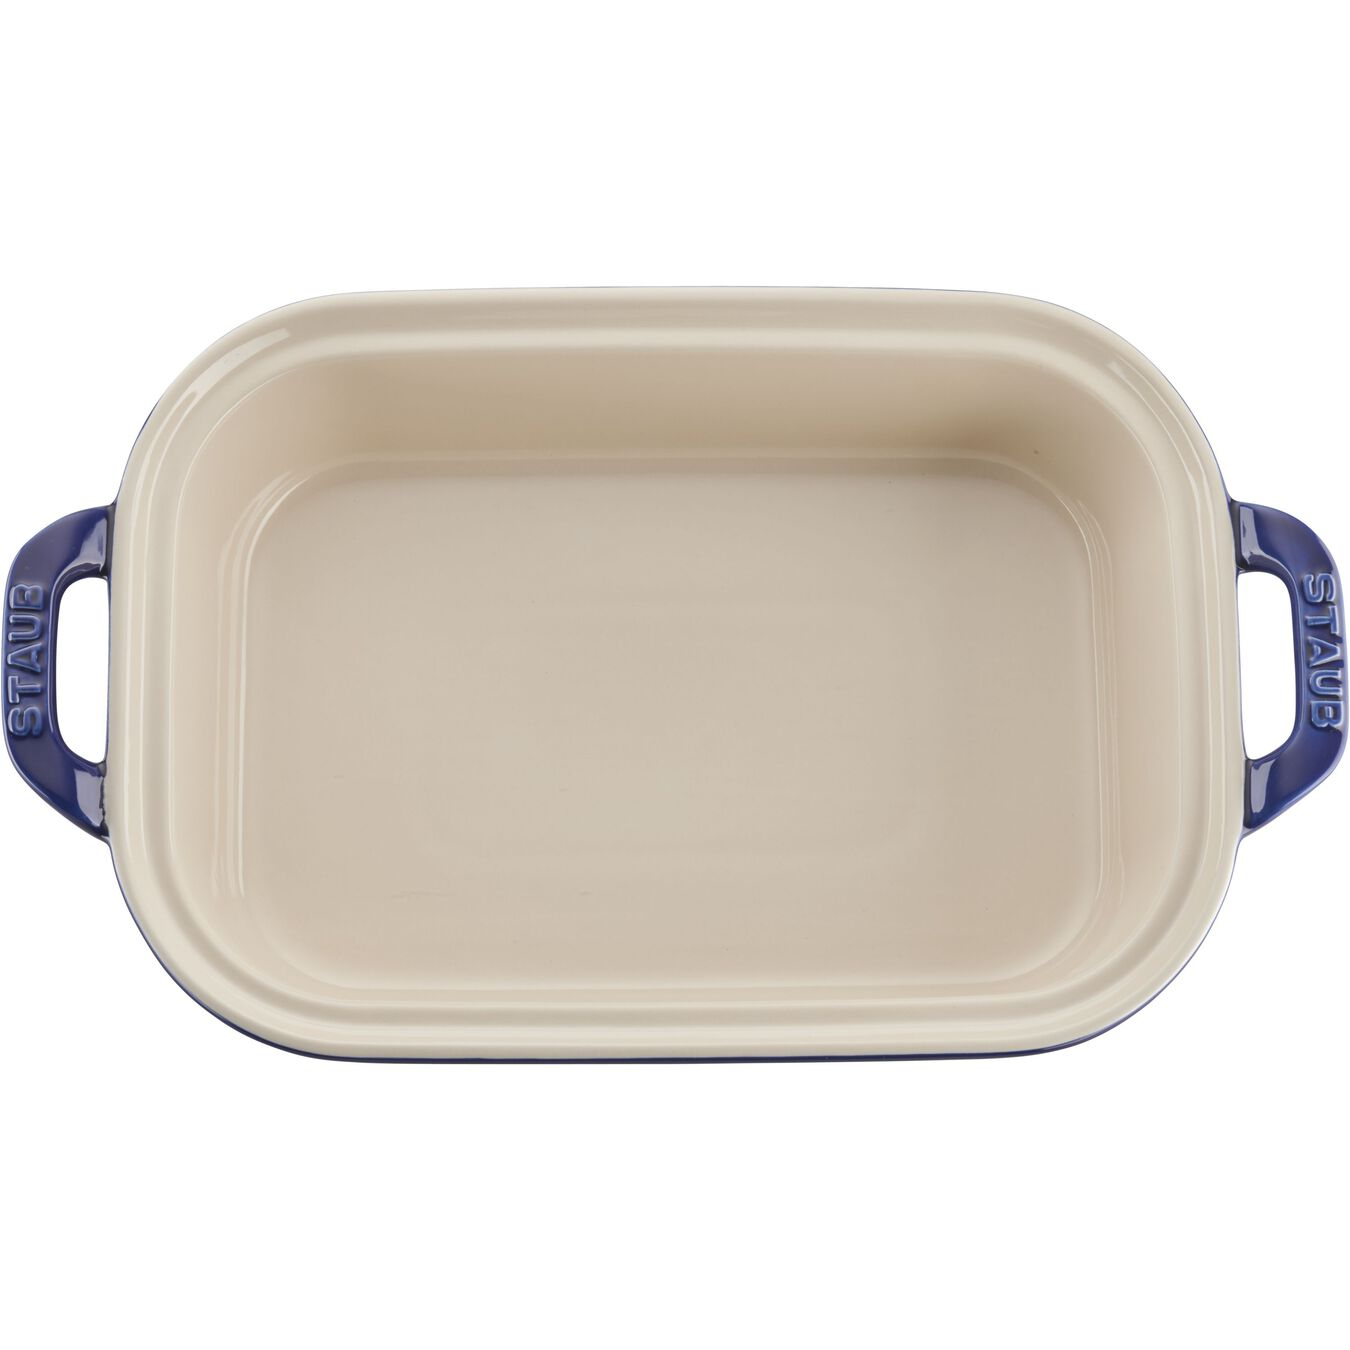 12-inch x 8-inch Rectangular Covered Baking Dish - Dark Blue,,large 4